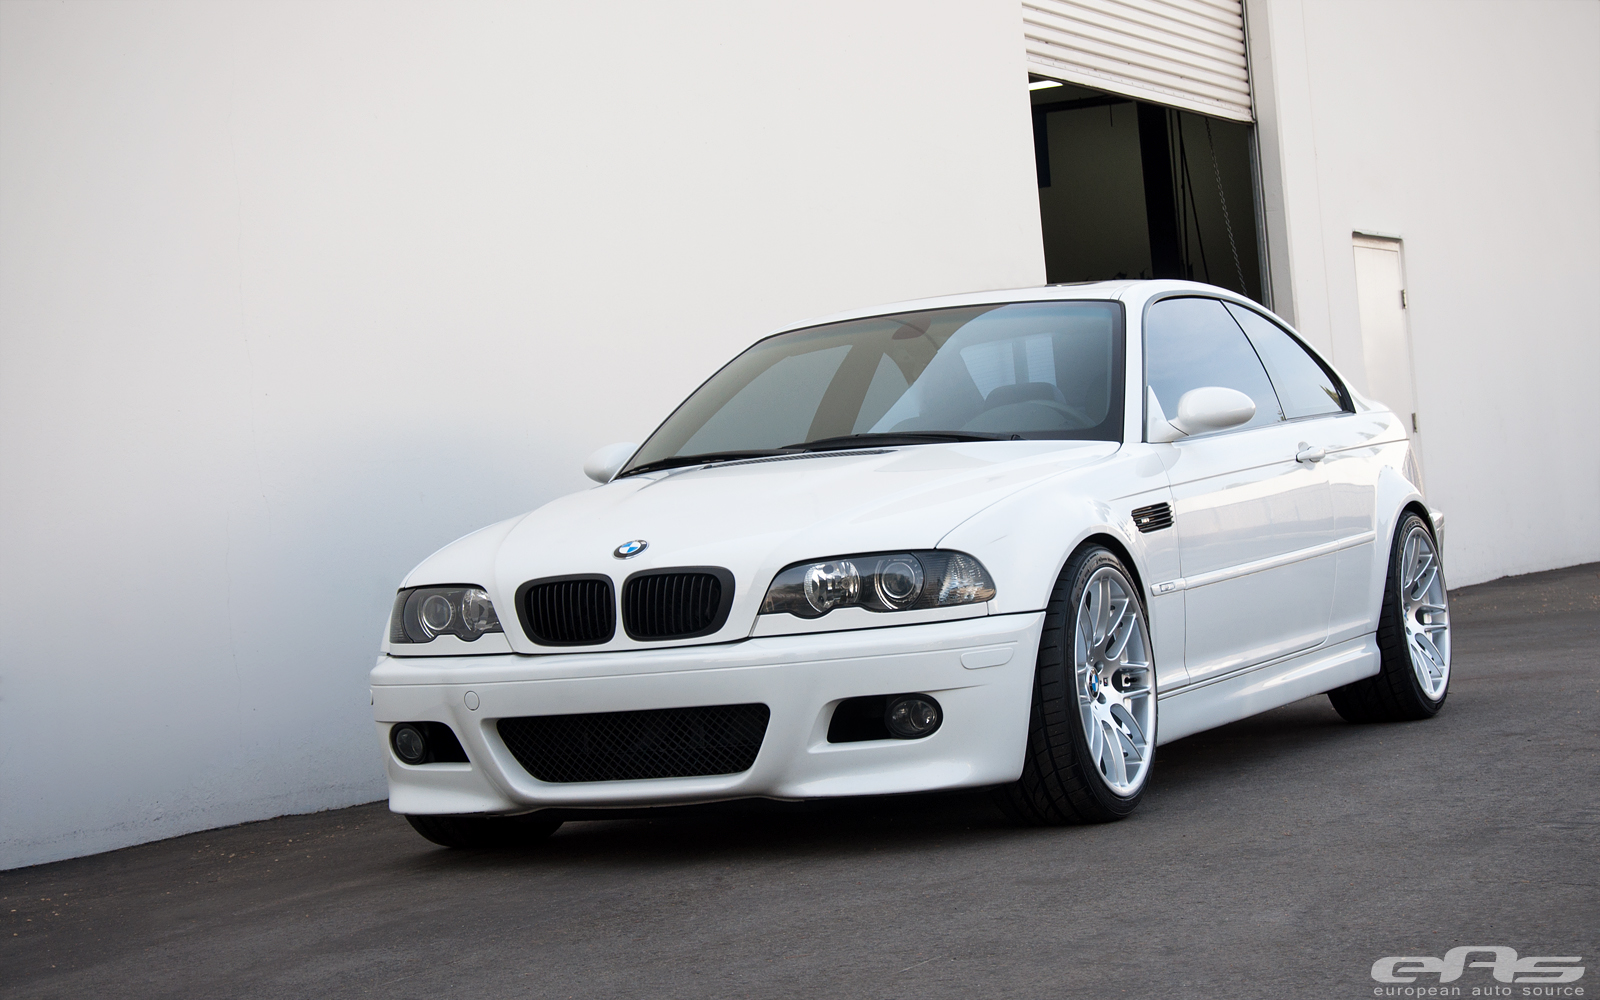 Reviews On The M3 Bumpers Sold For Non M3 E46 S From Ebay Bmw E46 Fanatics Forum